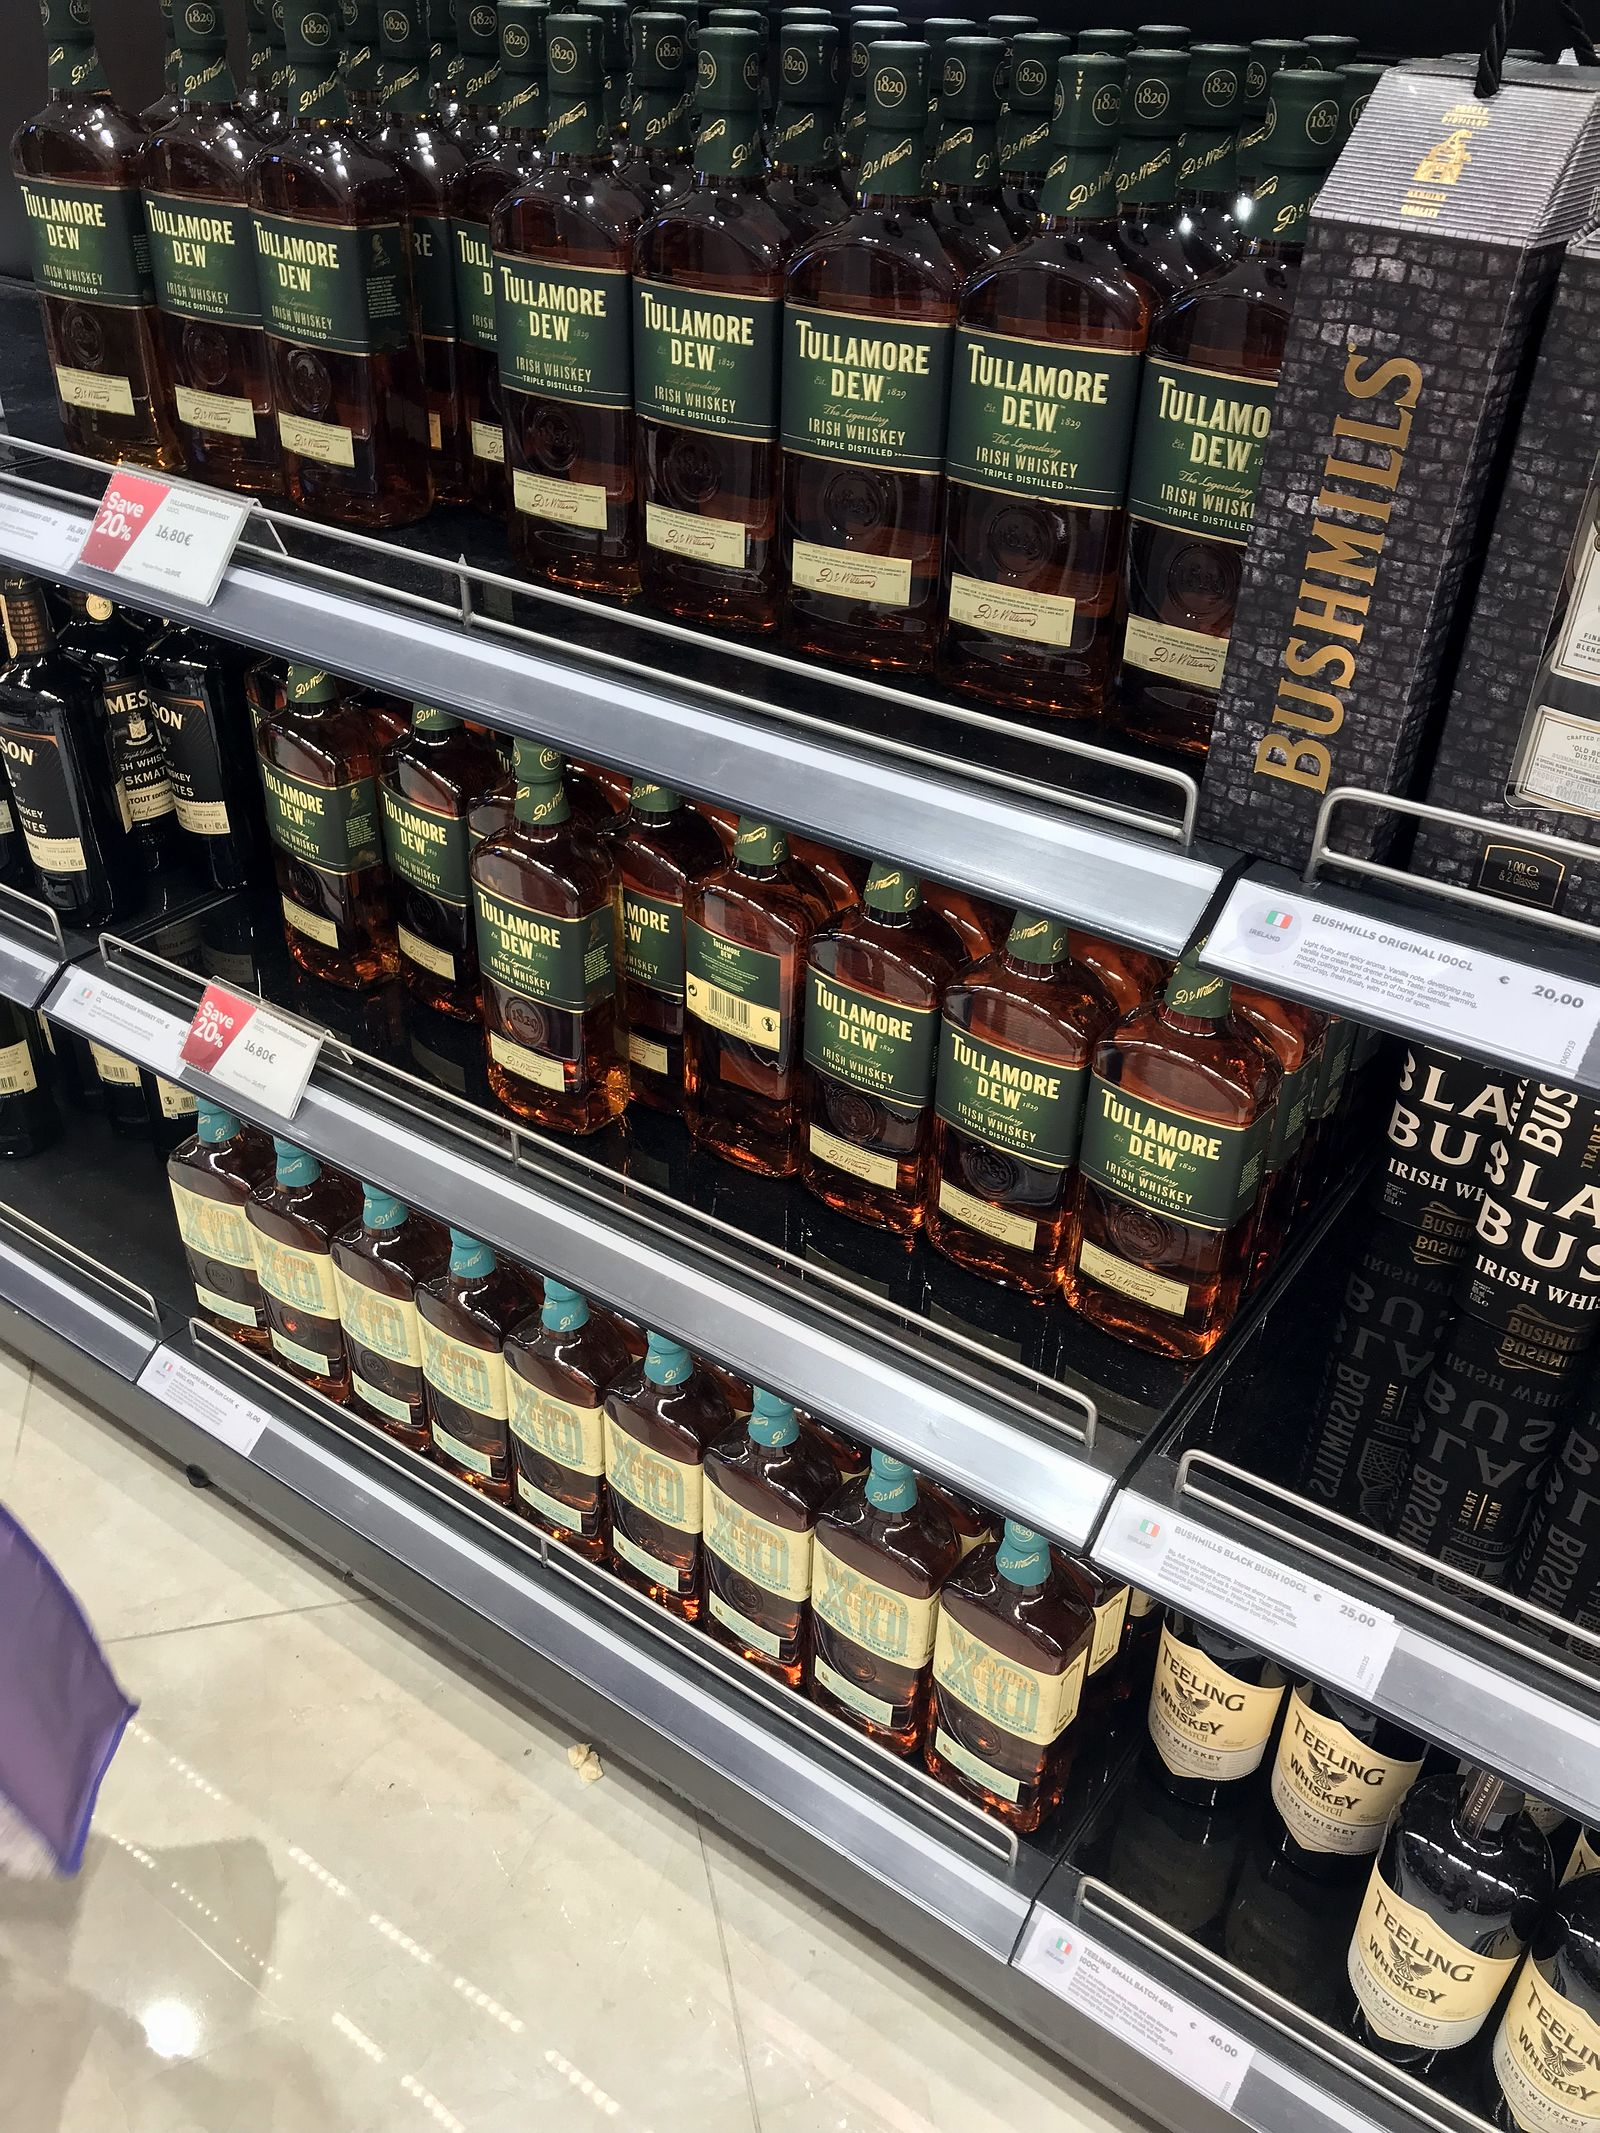 Duty free Antalya, august 2019, whiskey Tullamore dew, Bushmills